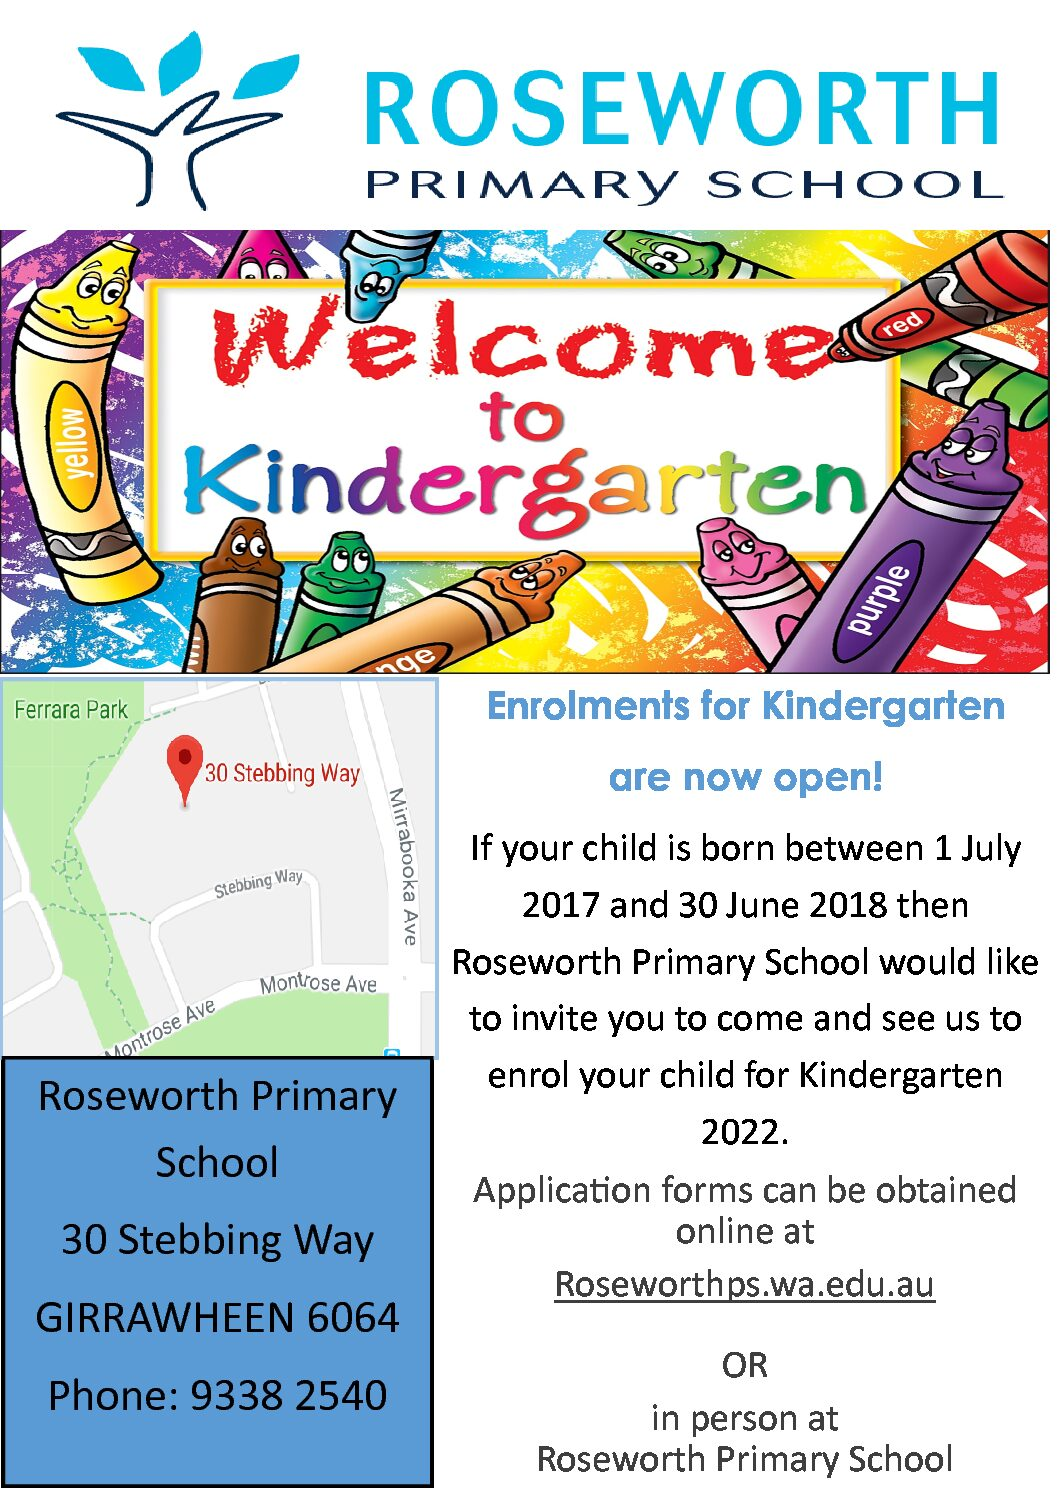 Kindergarten 2022 Enrolments are now open!